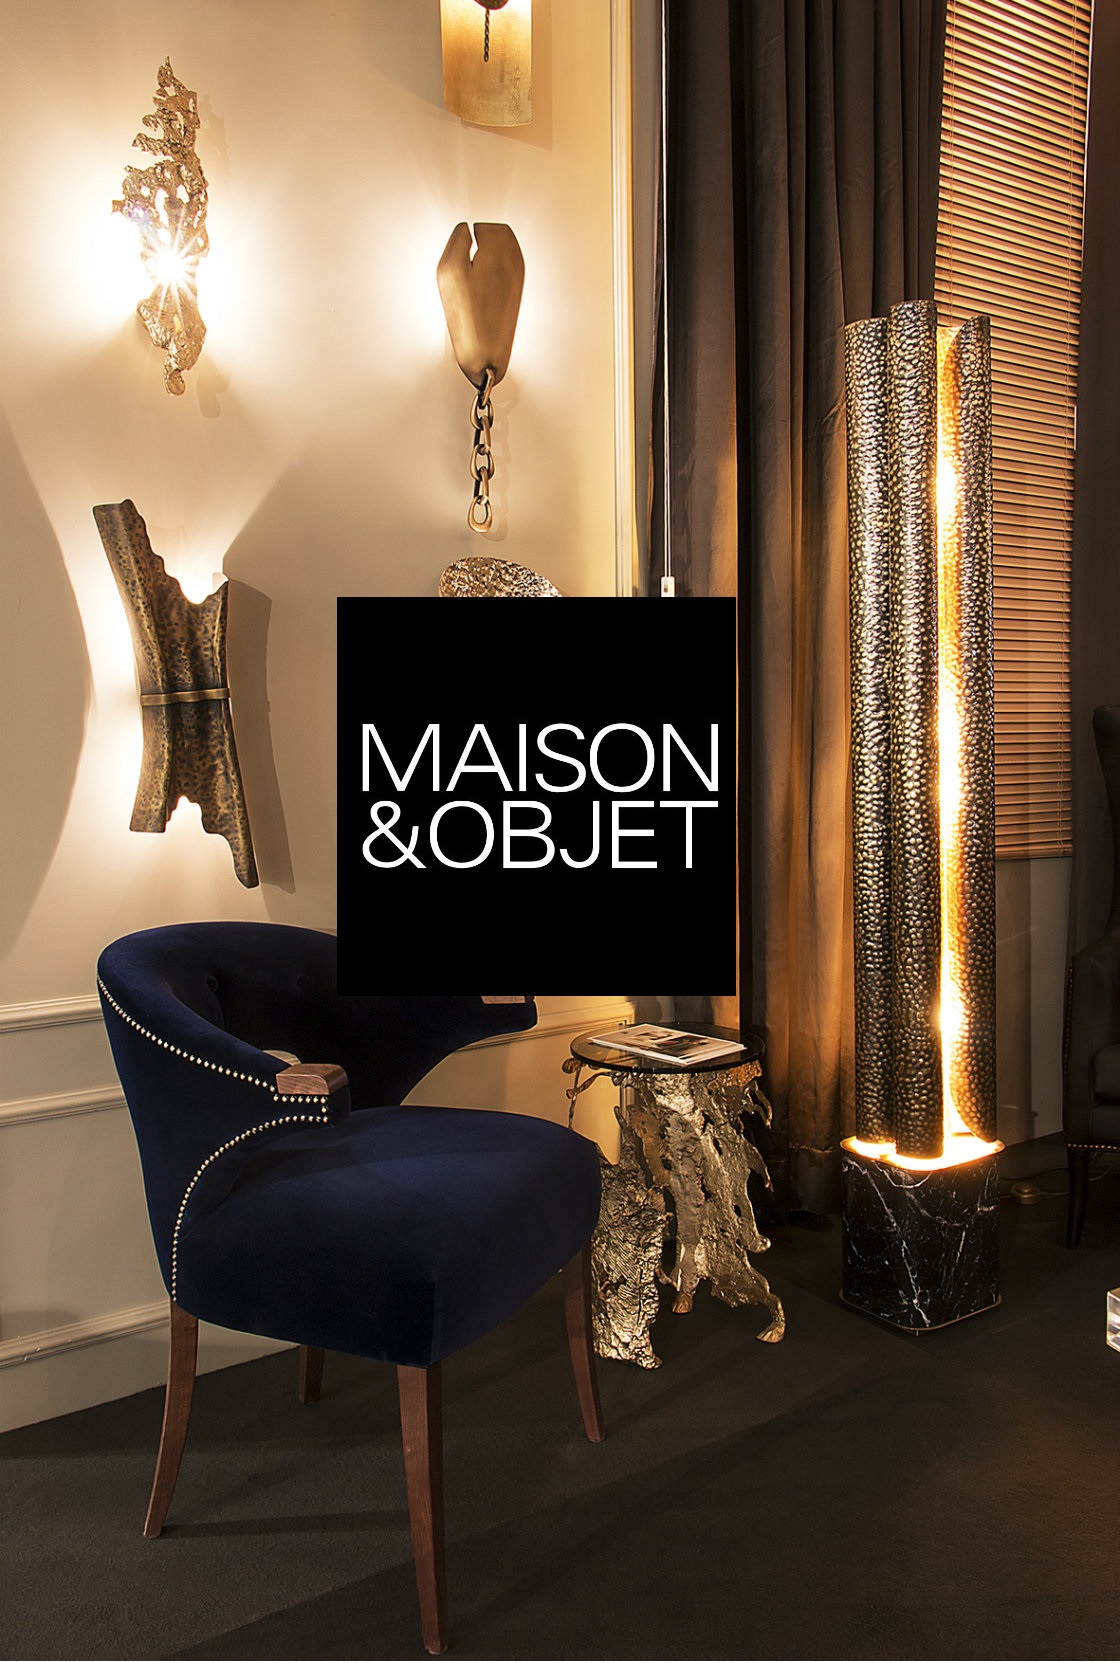 Everything You Need to Know About Maison et Objet 2017